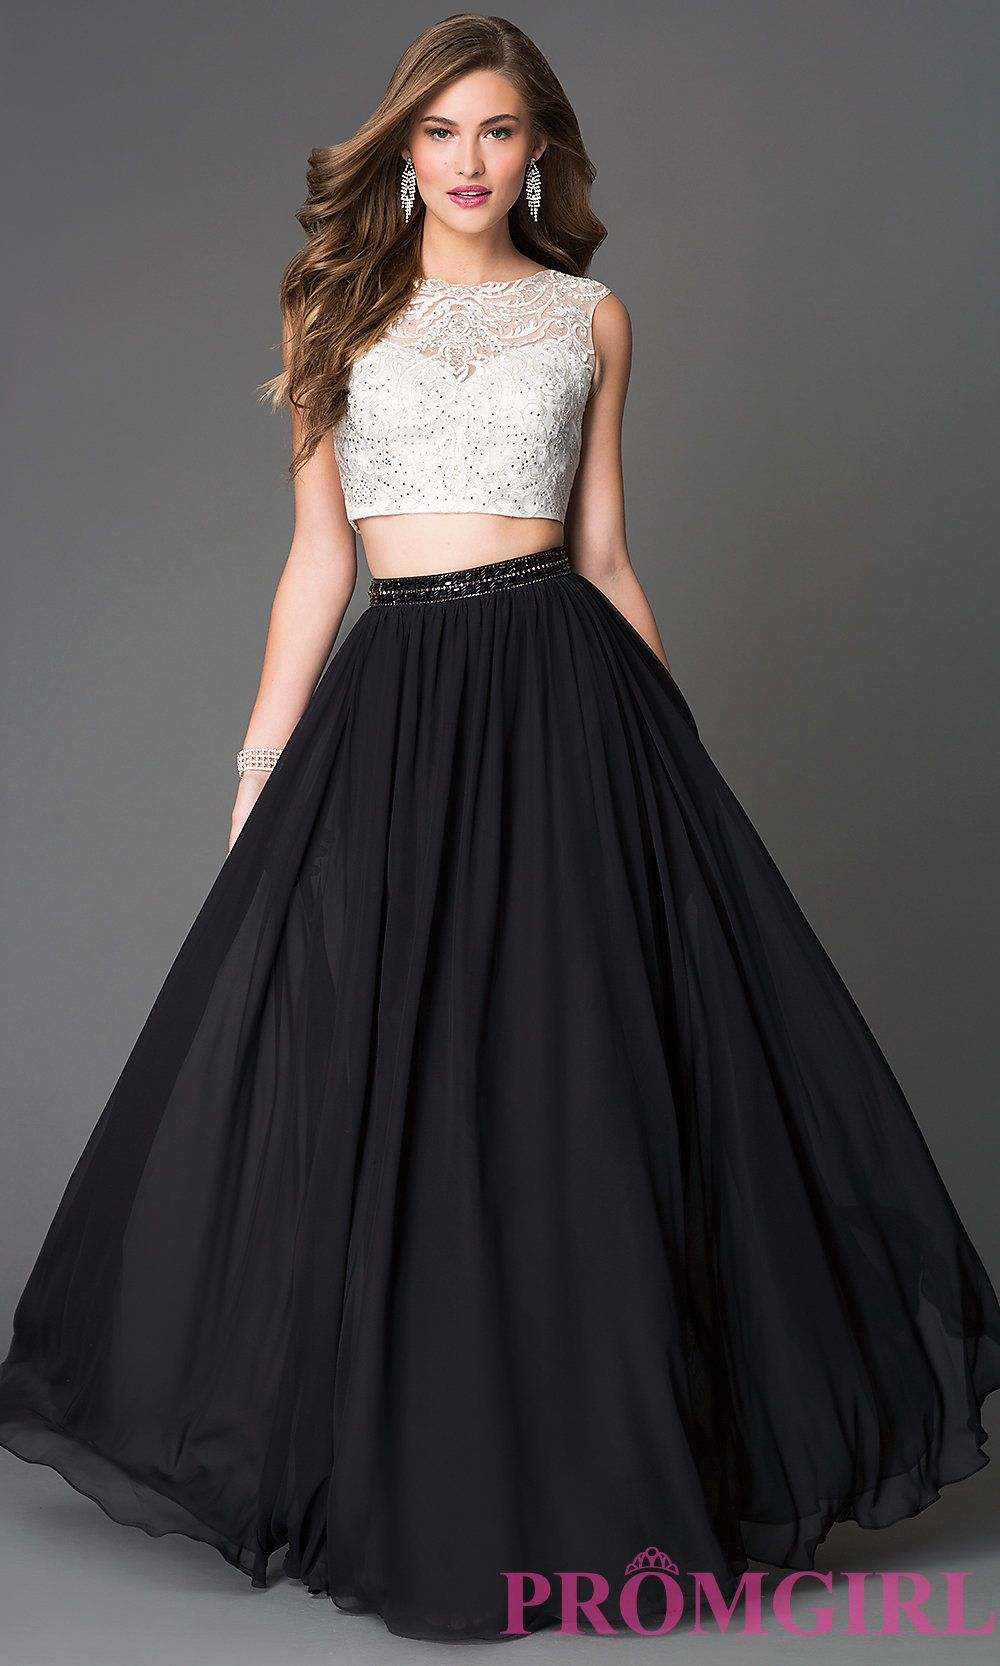 8f91330702a Prom Dresses, Celebrity Dresses, Sexy Evening Gowns: Two Piece Long  Sleeveless Prom Dress with Lace Top